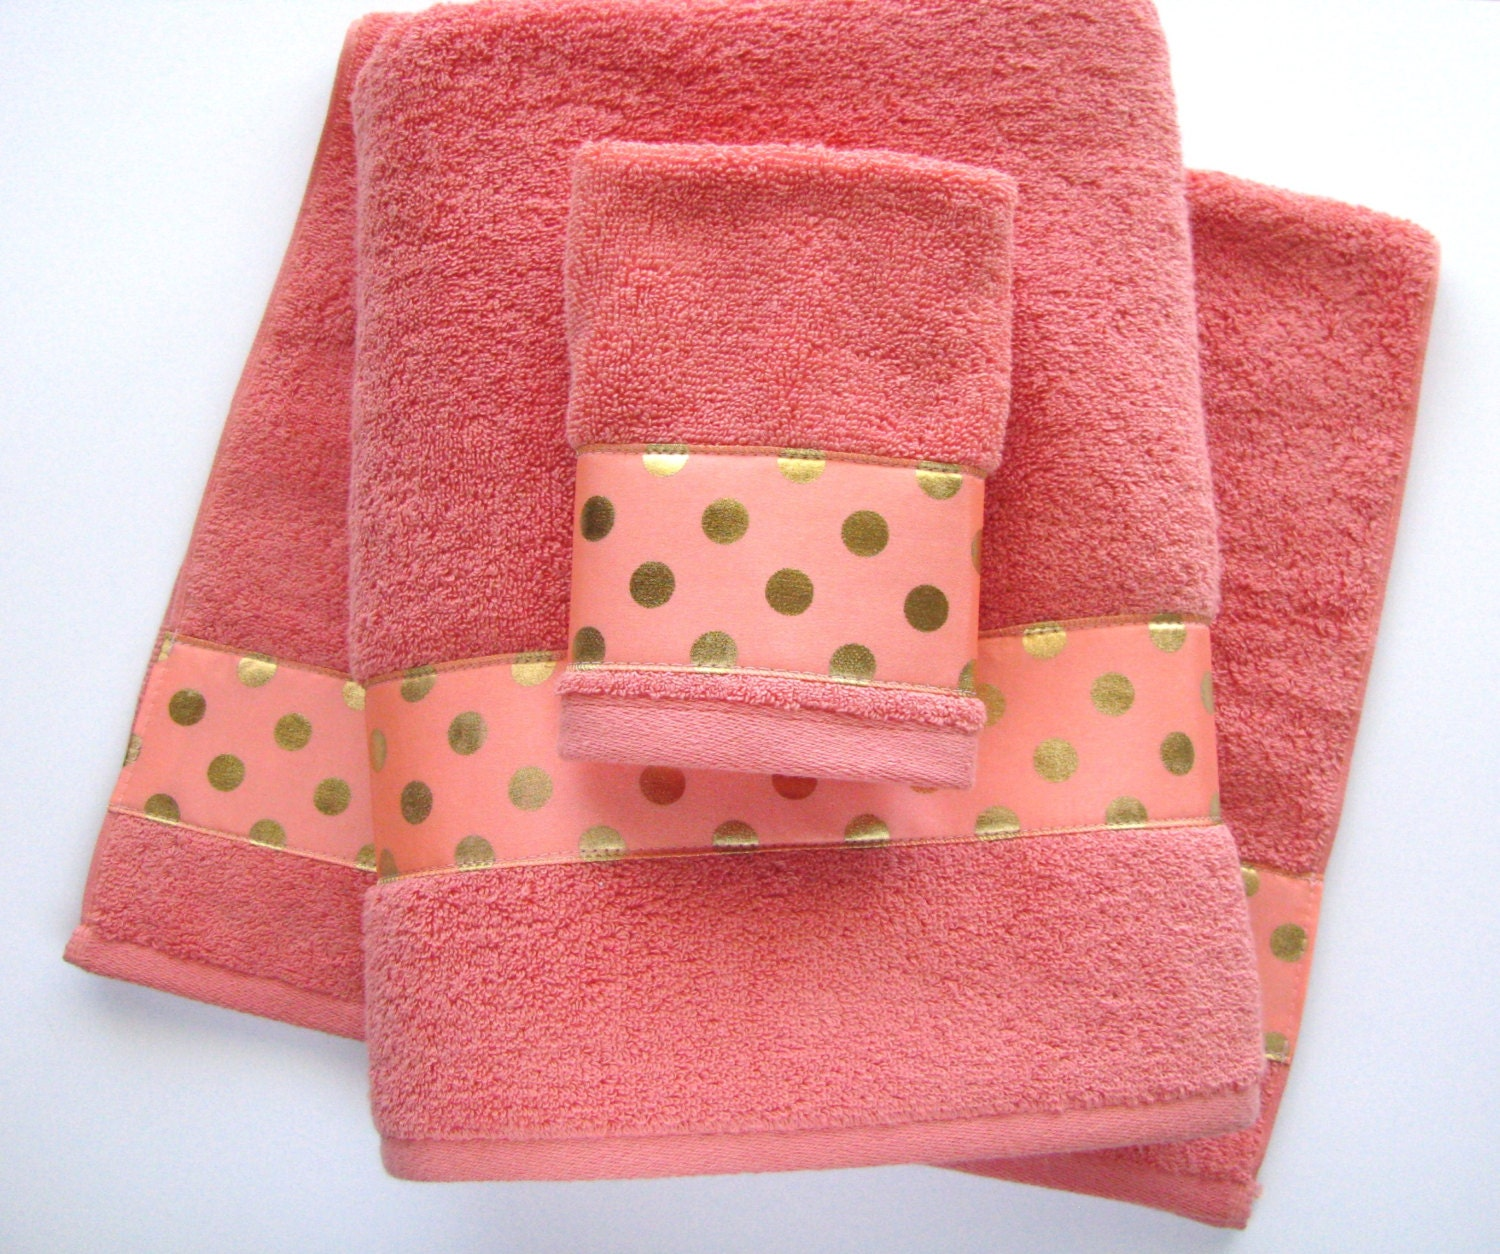 coral gold towels towels bath towels custom by augustave